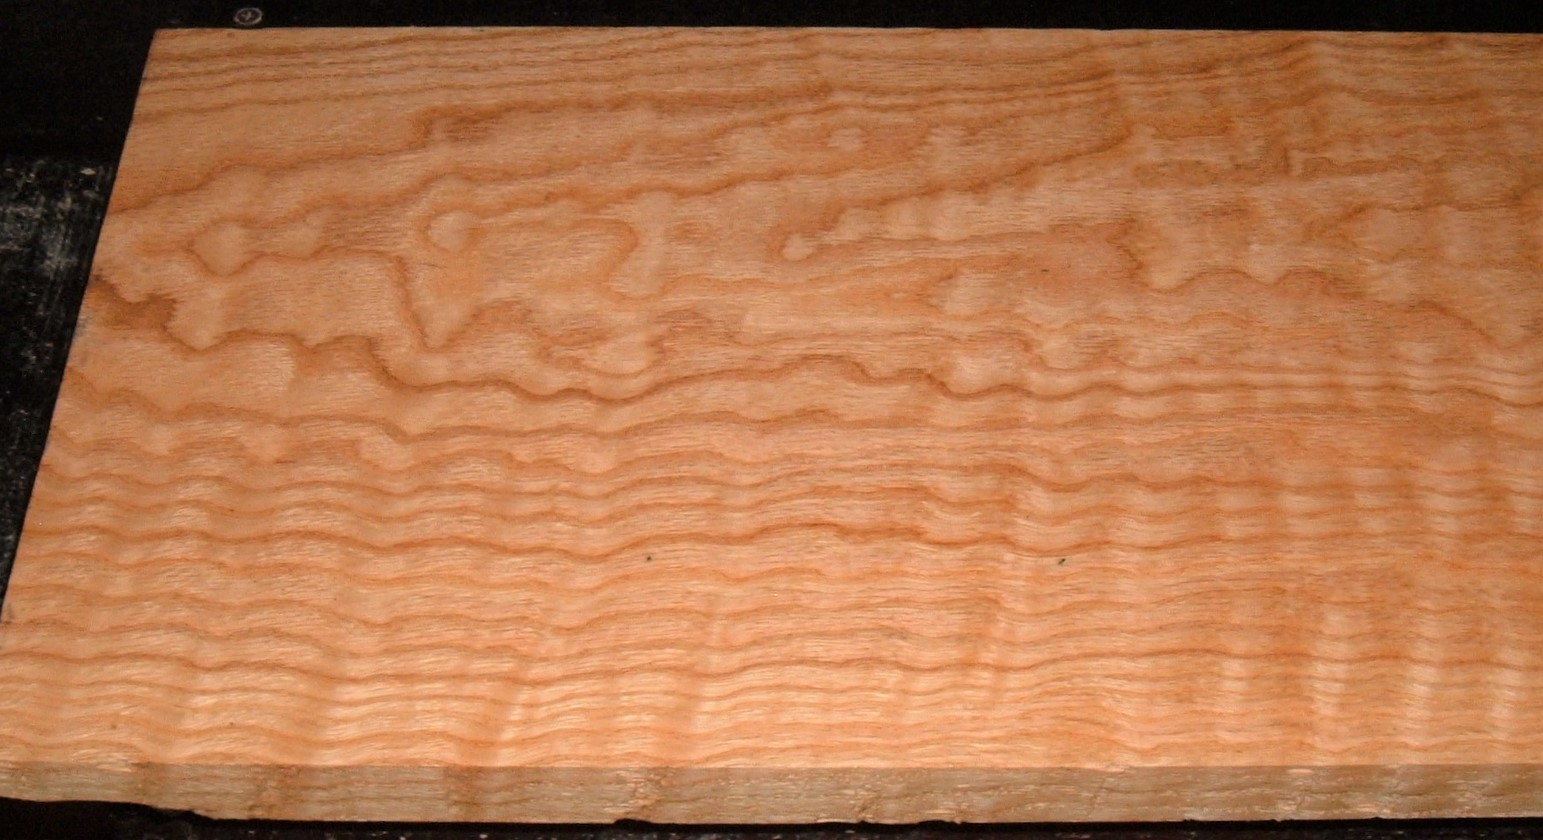 RO2102-22J, Curly Figured Tiger Red Oak, 1x11-3/8x73